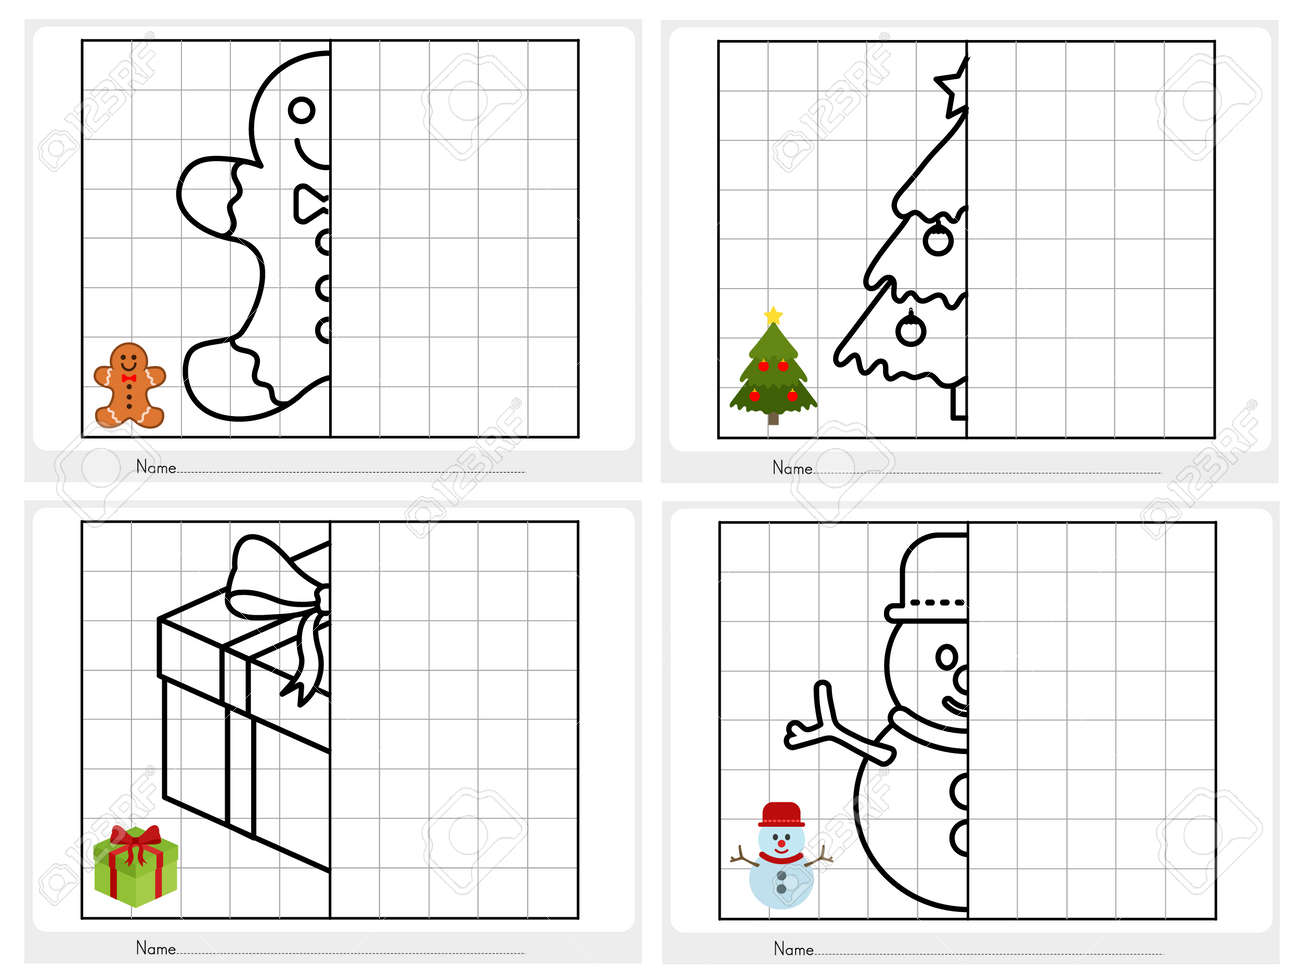 Christmas theme activity sheet - Symmetrical picture - Worksheet..